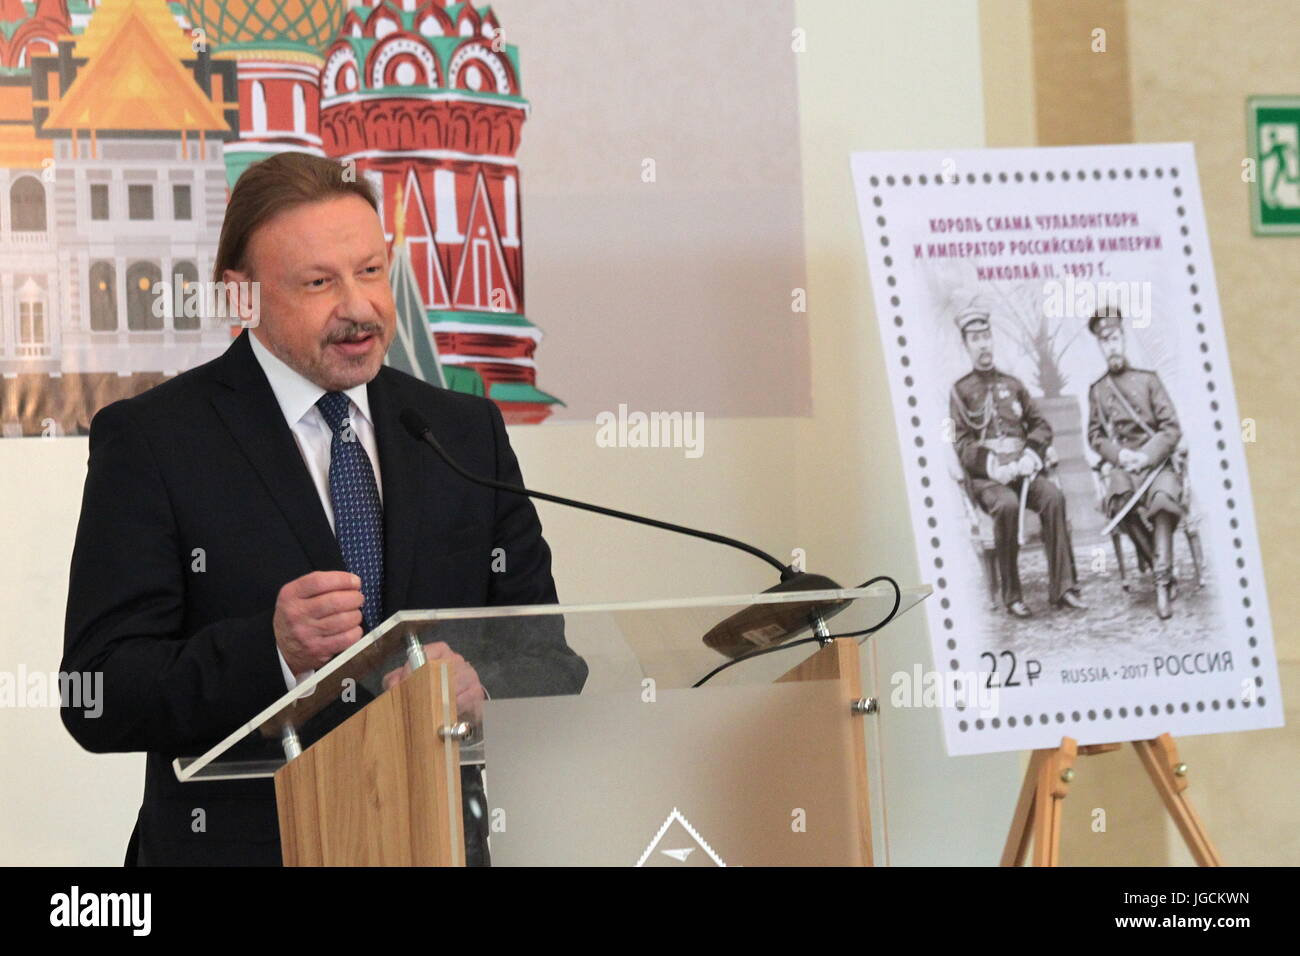 Bangkok, Thailand. 6th July, 2017. Russian Ambassador to Thailand Kirill Barsky speaks during a ceremony to cancel - Stock Image